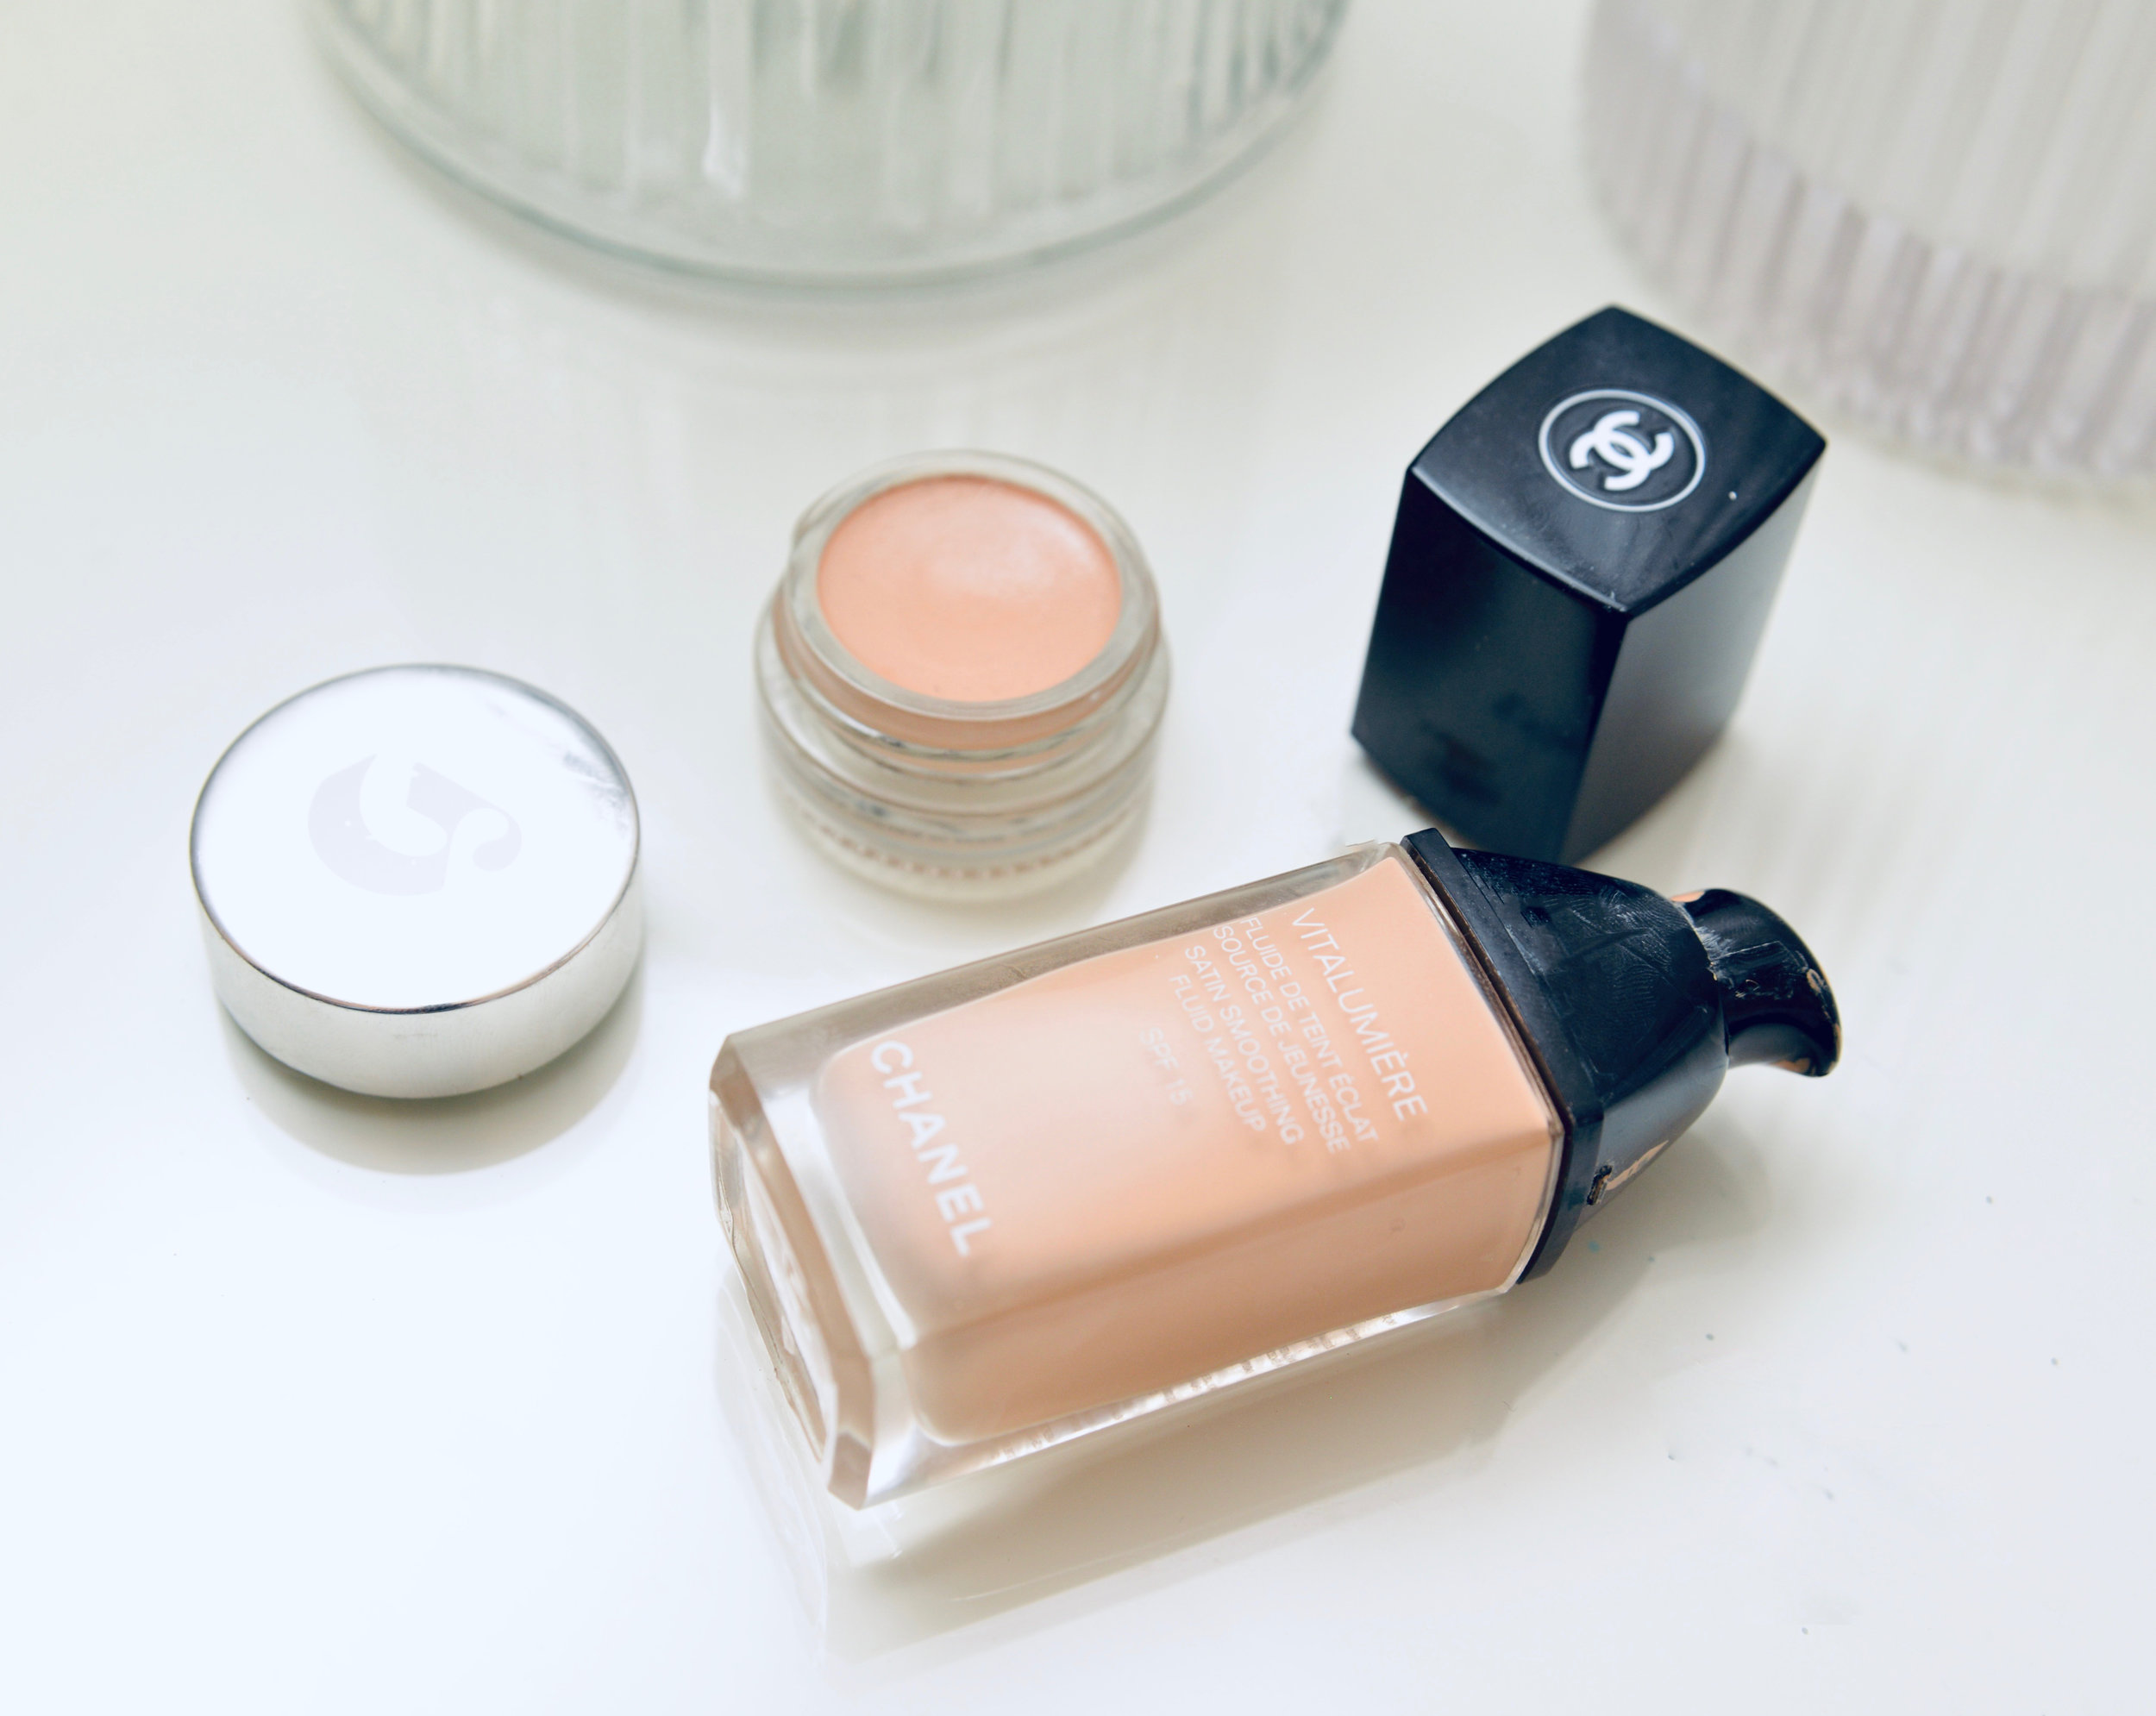 Chanel Lumiere Foundation